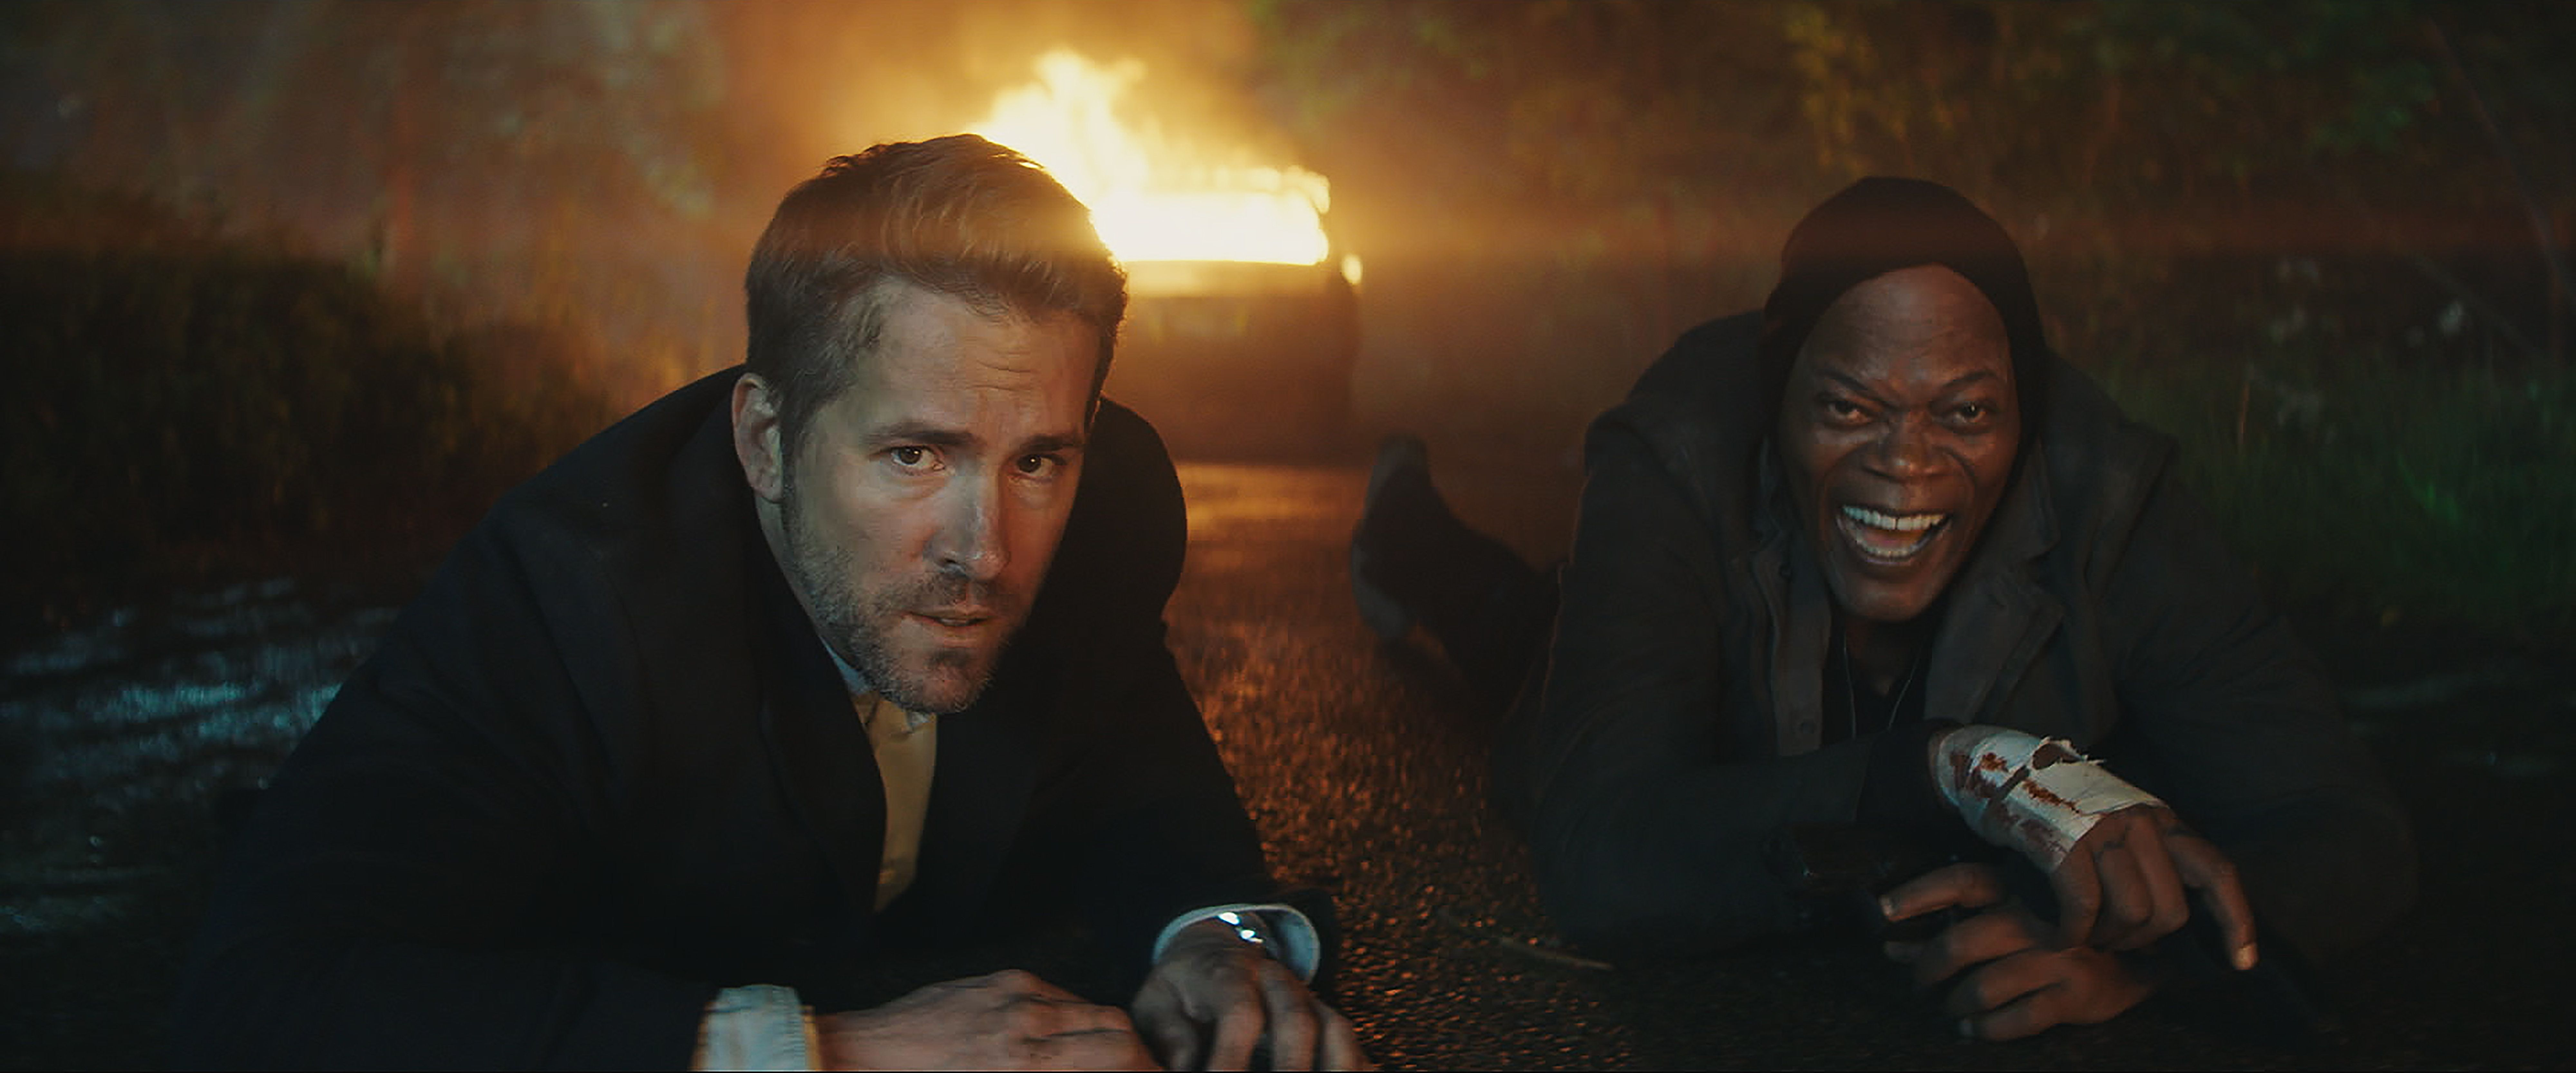 Michael Bryce (Ryan Reynolds) and Darius Kincaid (Samuel L. Jackson) in THE HITMAN'S BODYGUARD. Image Courtesy of Lionsgate Entertainment.